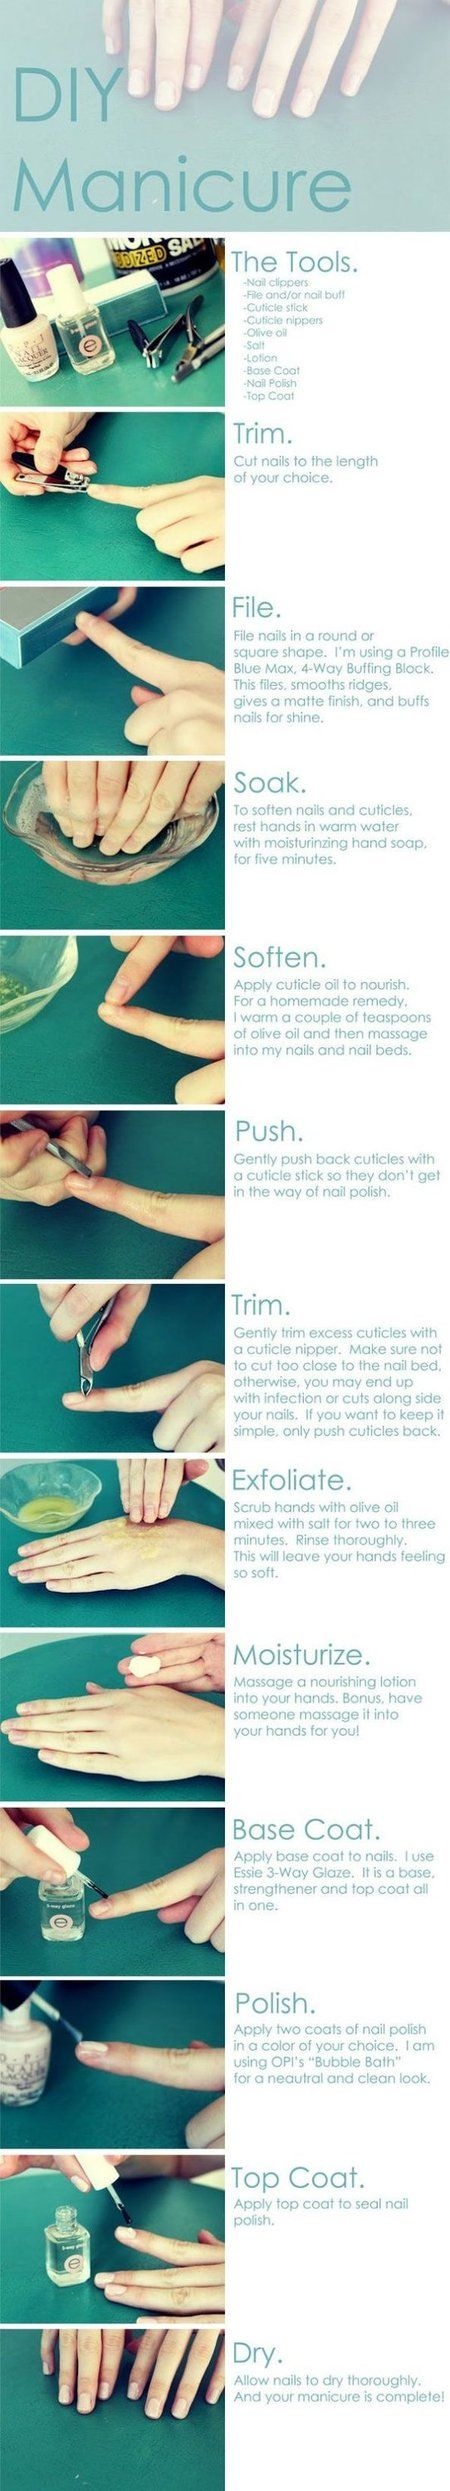 DIY Manicure. Although I would replace the base coat with just prepping/removing oils from the nail with vinegar or nail polish remover.